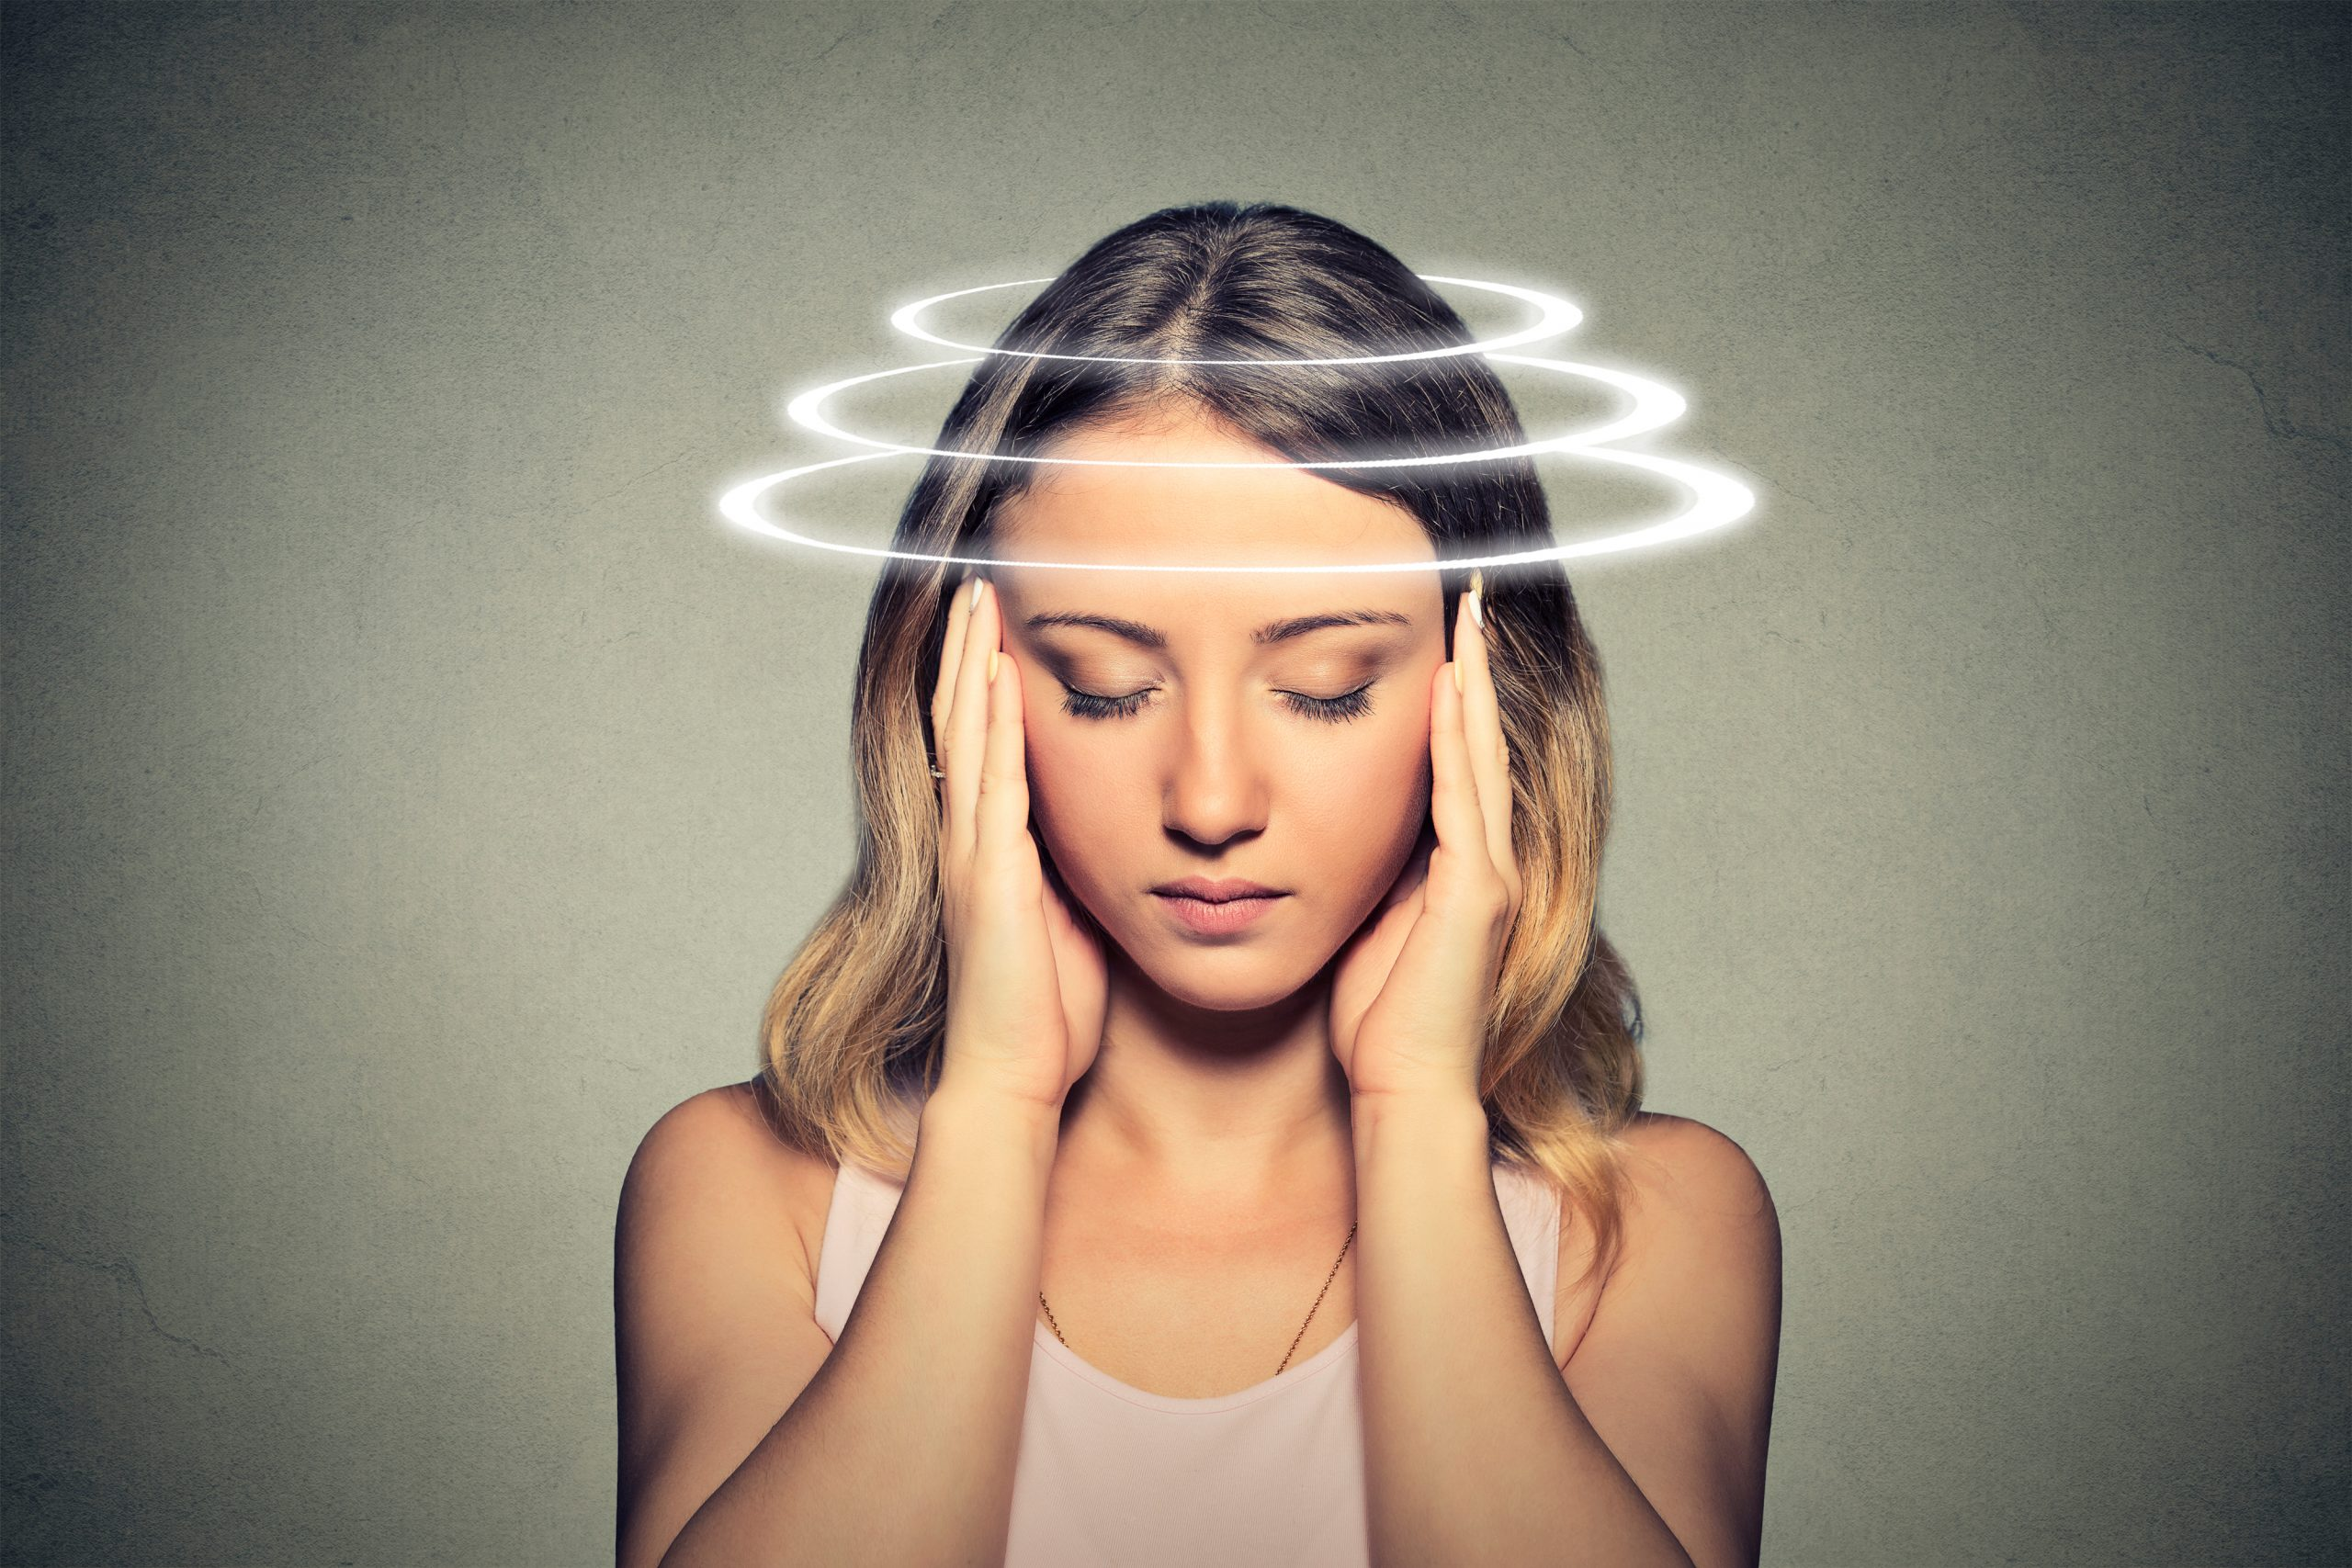 10-critical-reasons-why-people-suffer-from-dizziness